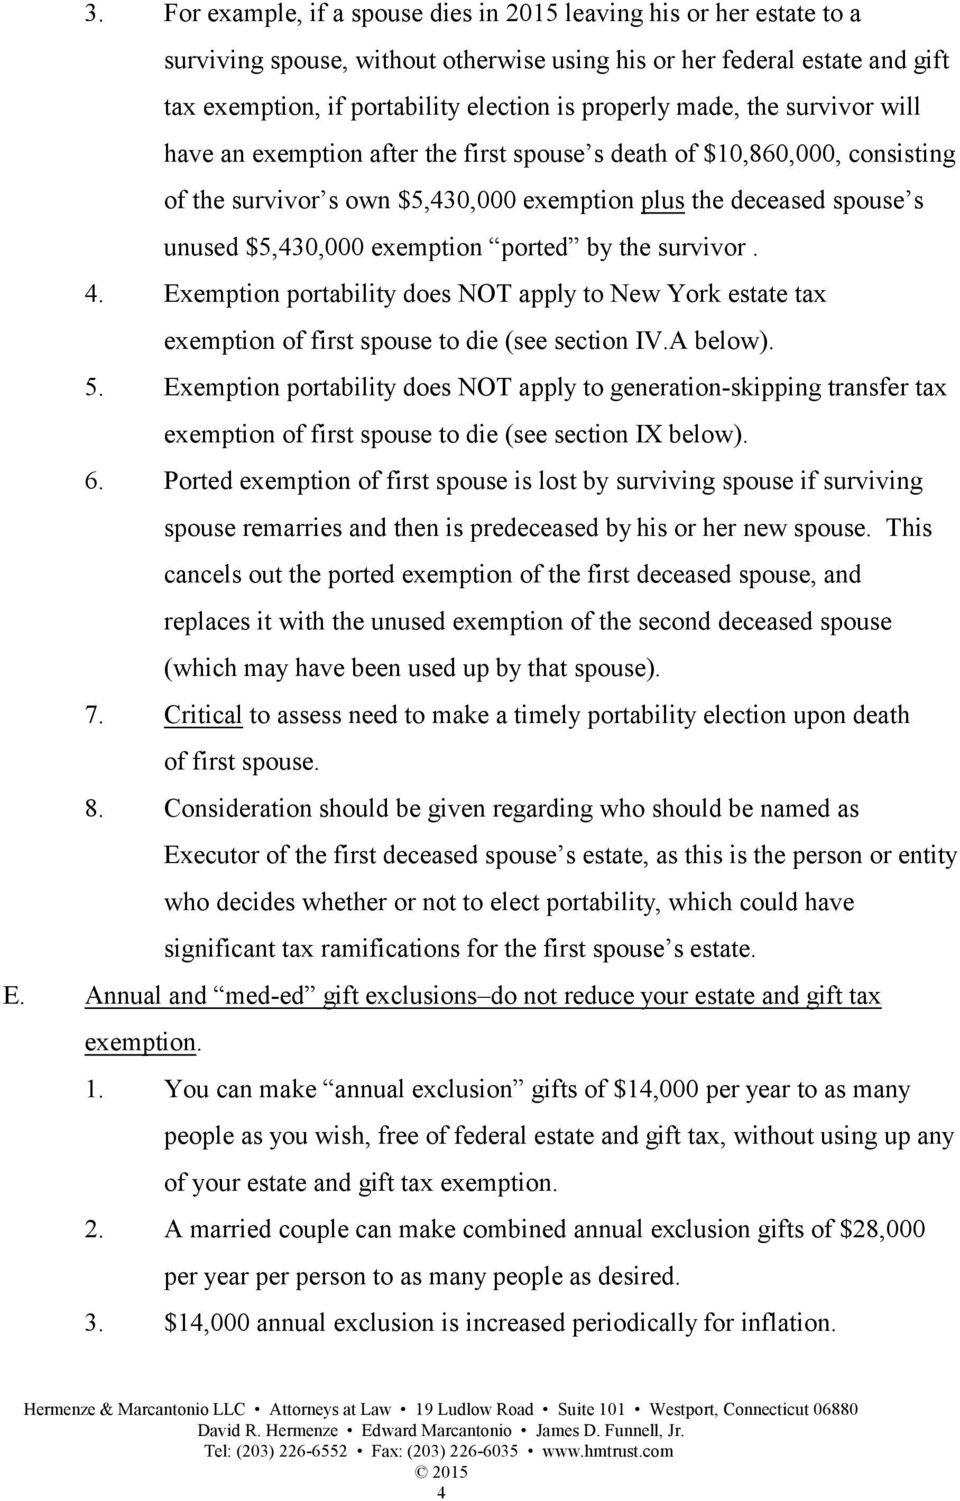 ported by the survivor. 4. Exemption portability does NOT apply to New York estate tax exemption of first spouse to die (see section IV.A below). 5.